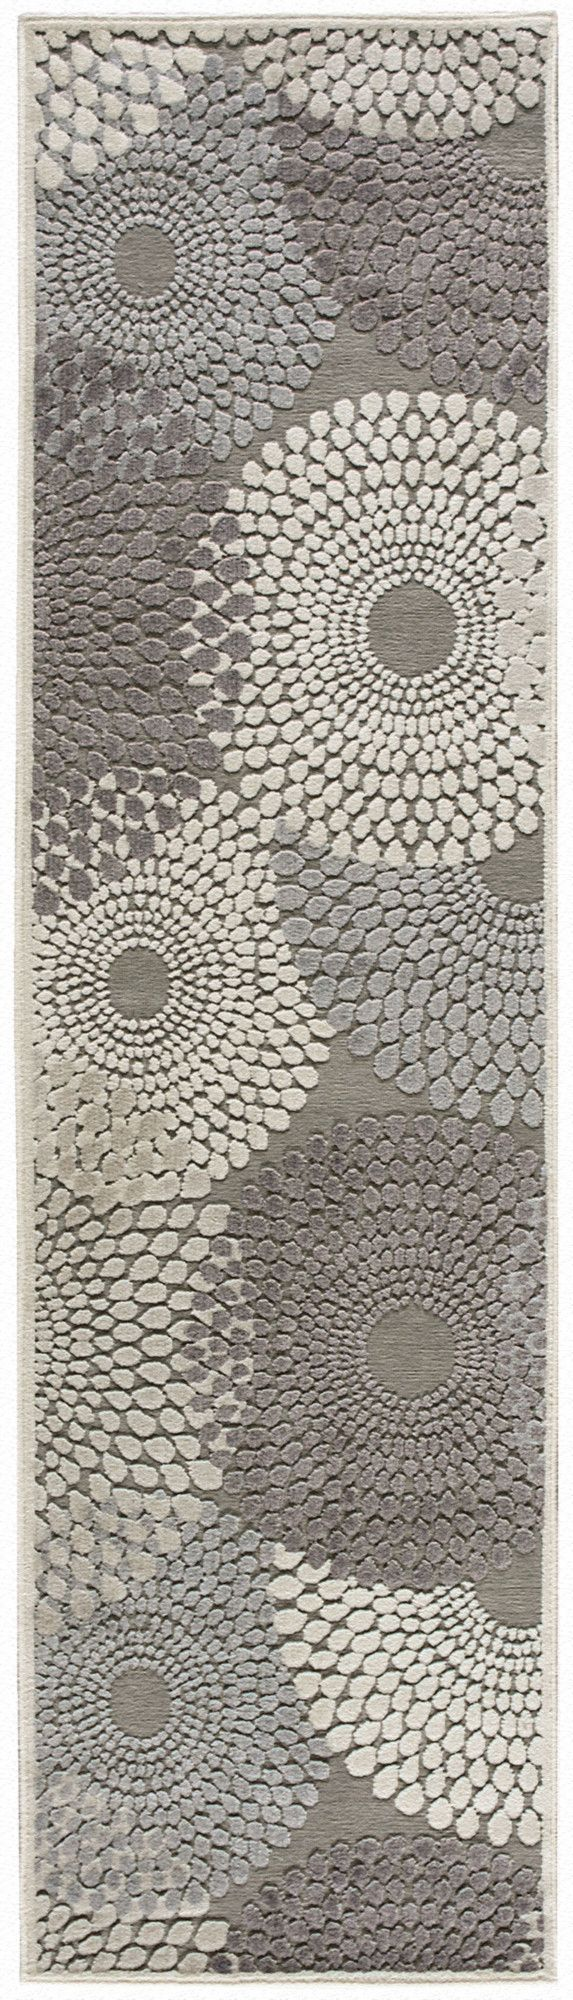 Best Bathroom Rugs Ideas On Pinterest Double Vanity - Beige bath mat for bathroom decorating ideas